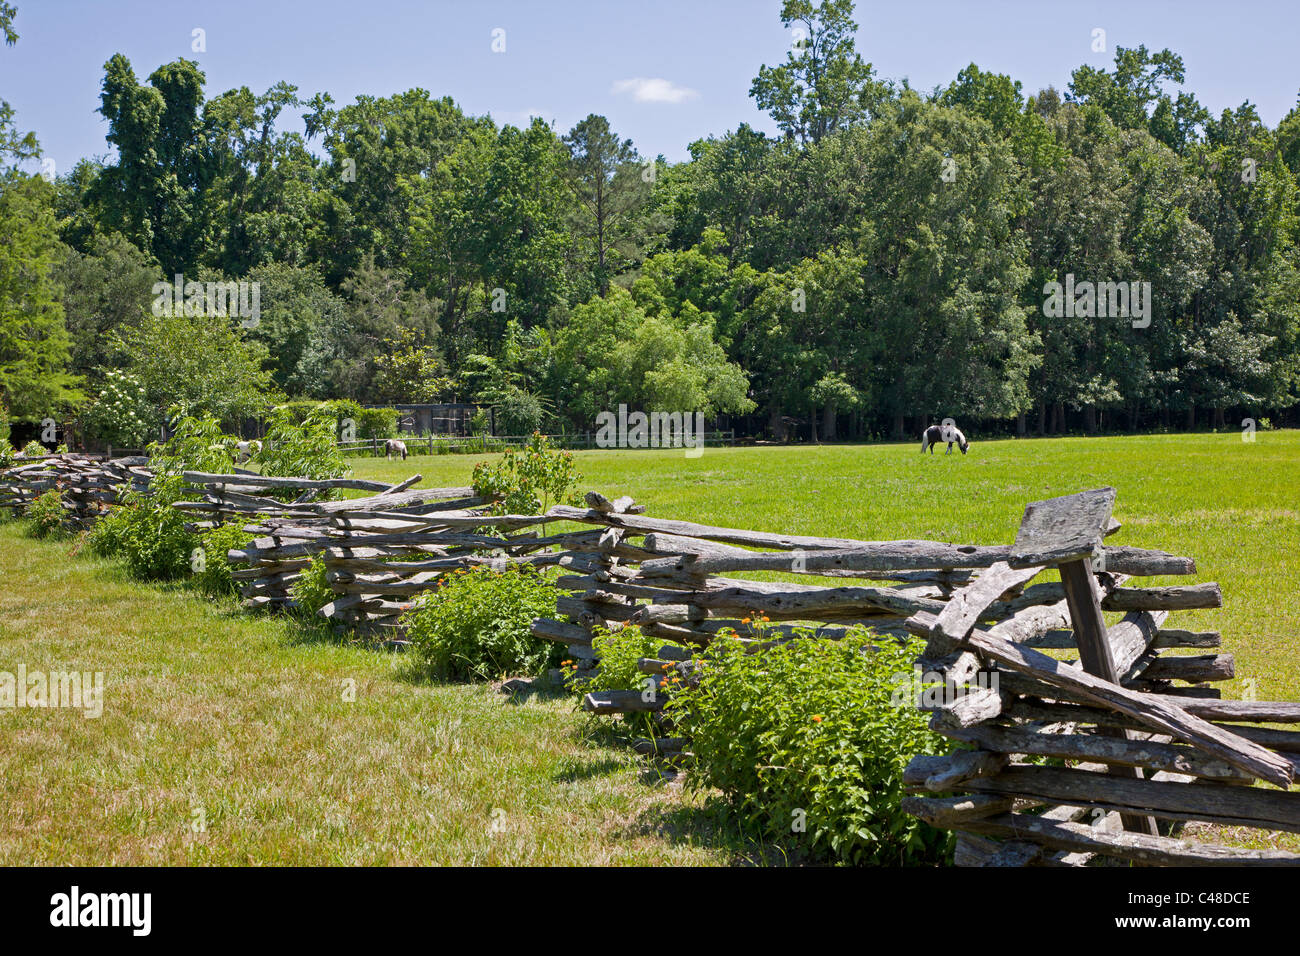 Old split rail fence in the gardens at magnolia plantation